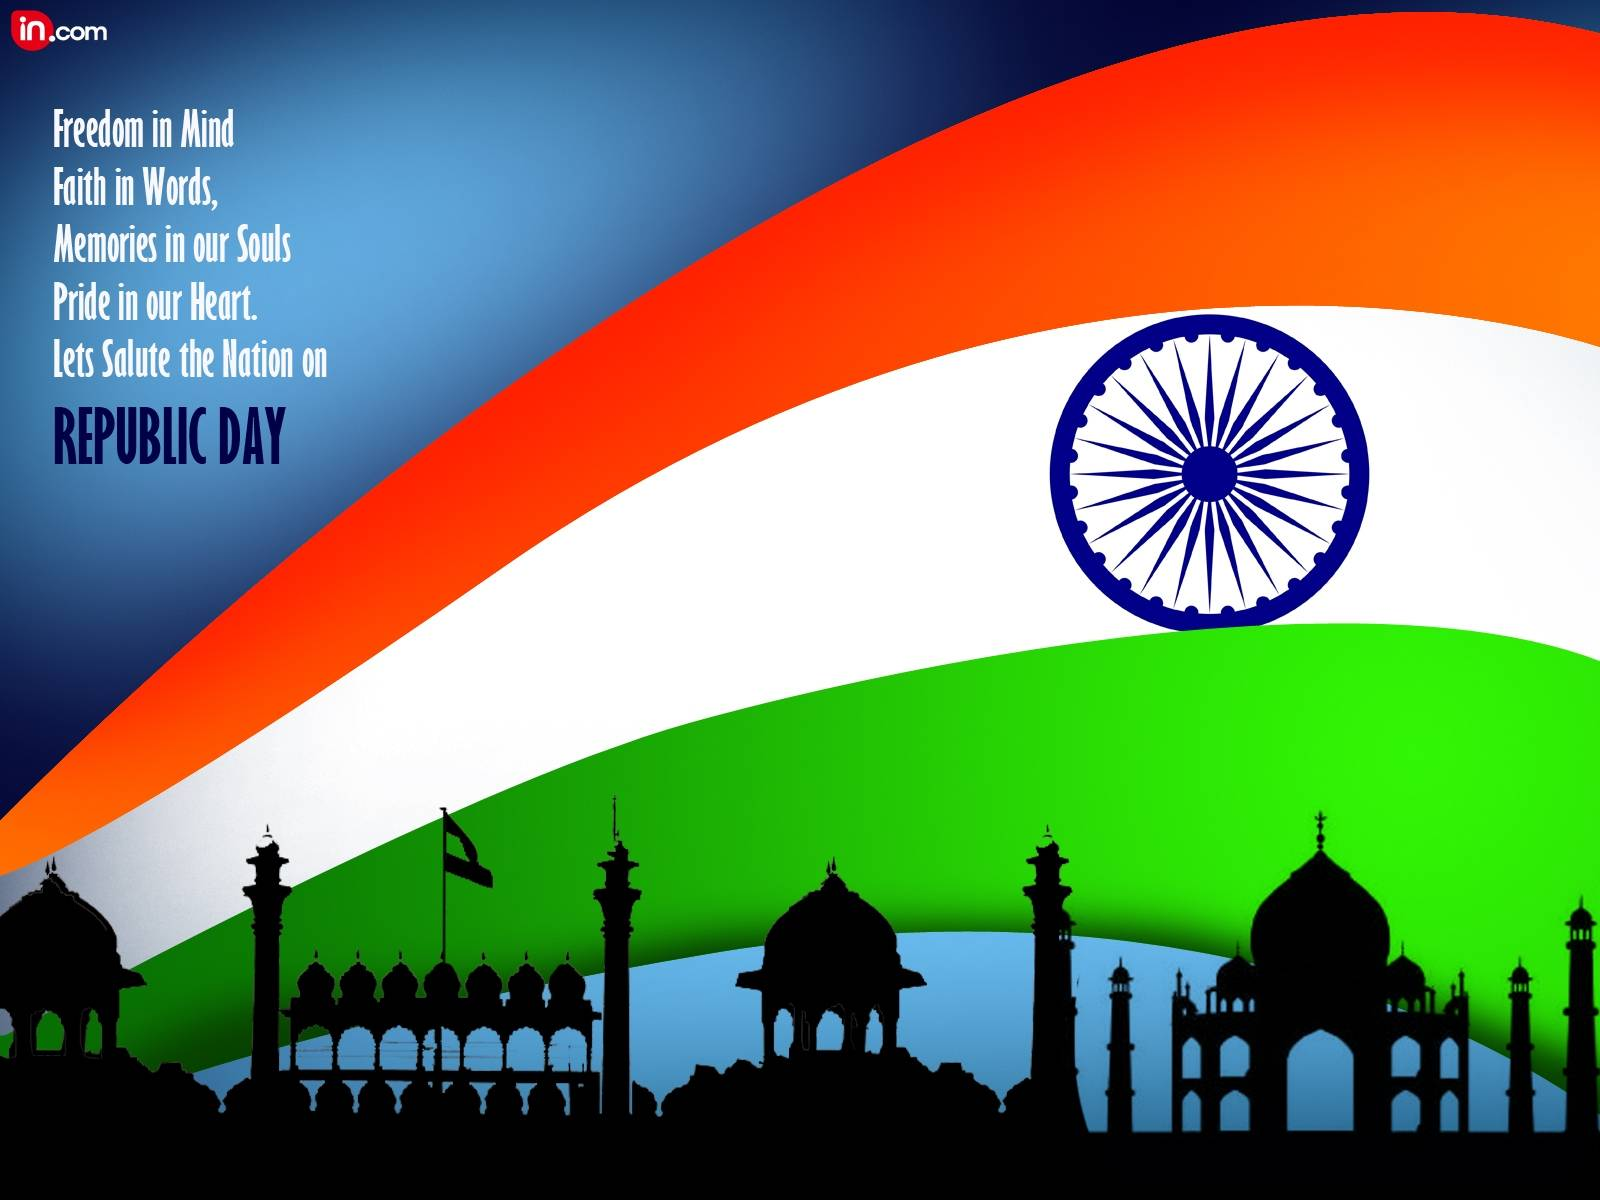 Gandhi Ji With Indian Flag Hd: 45 Best Republic Day Wallpapers